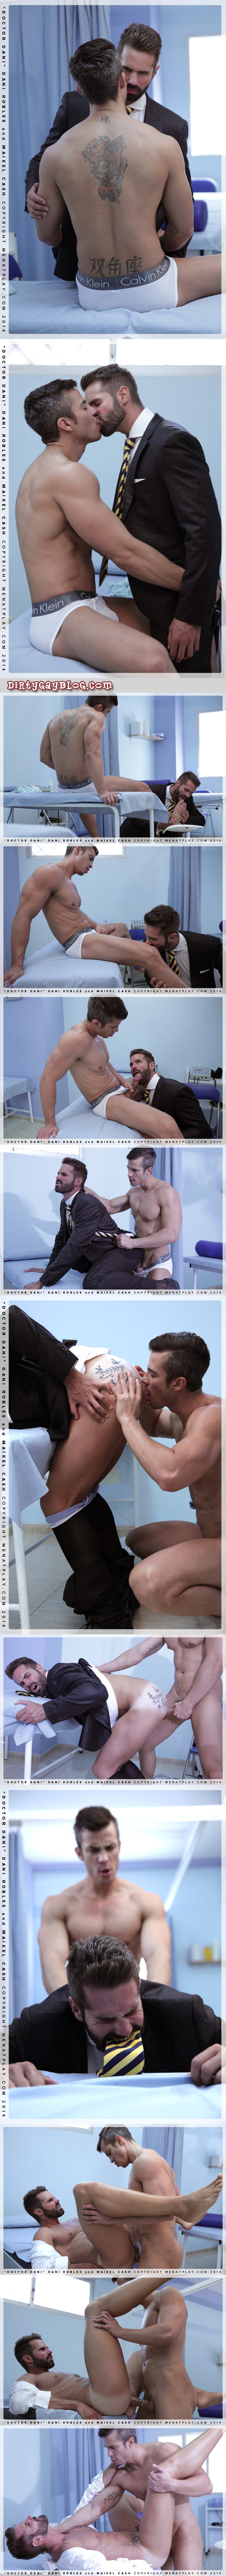 Ripped muscle athlete fucks a bearded doctor wearing a suit.